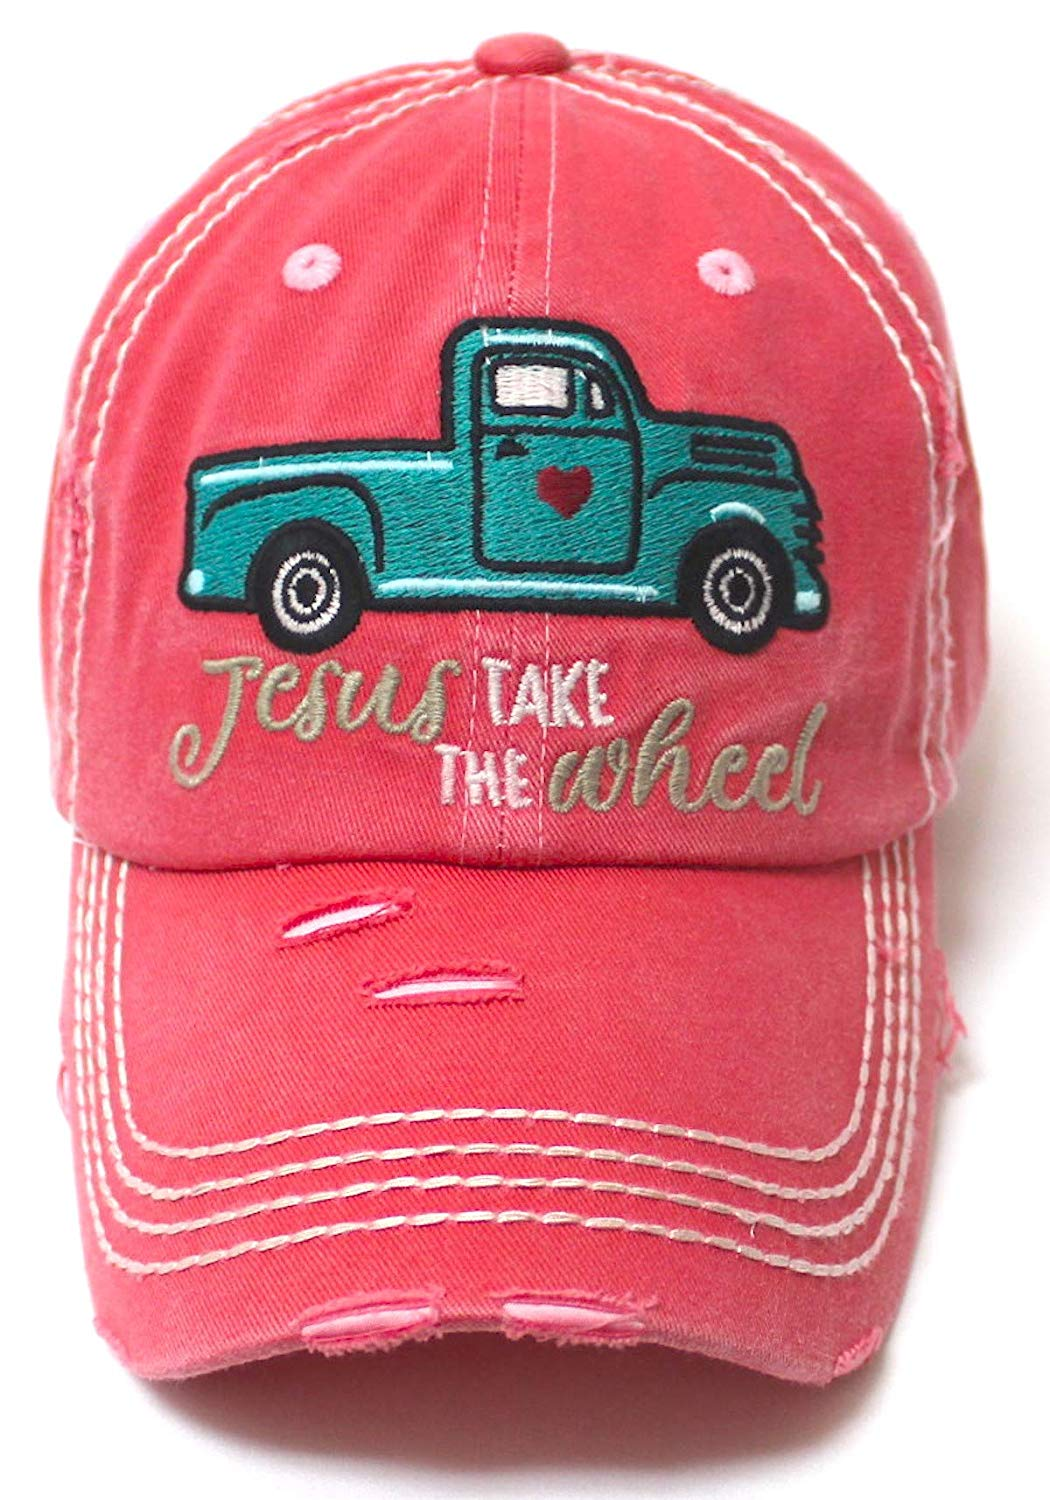 CAPS 'N VINTAGE Women's Camping Cap Jesus Take The Wheel Monogram Hippie Truck Hat, Coral Rose - Caps 'N Vintage